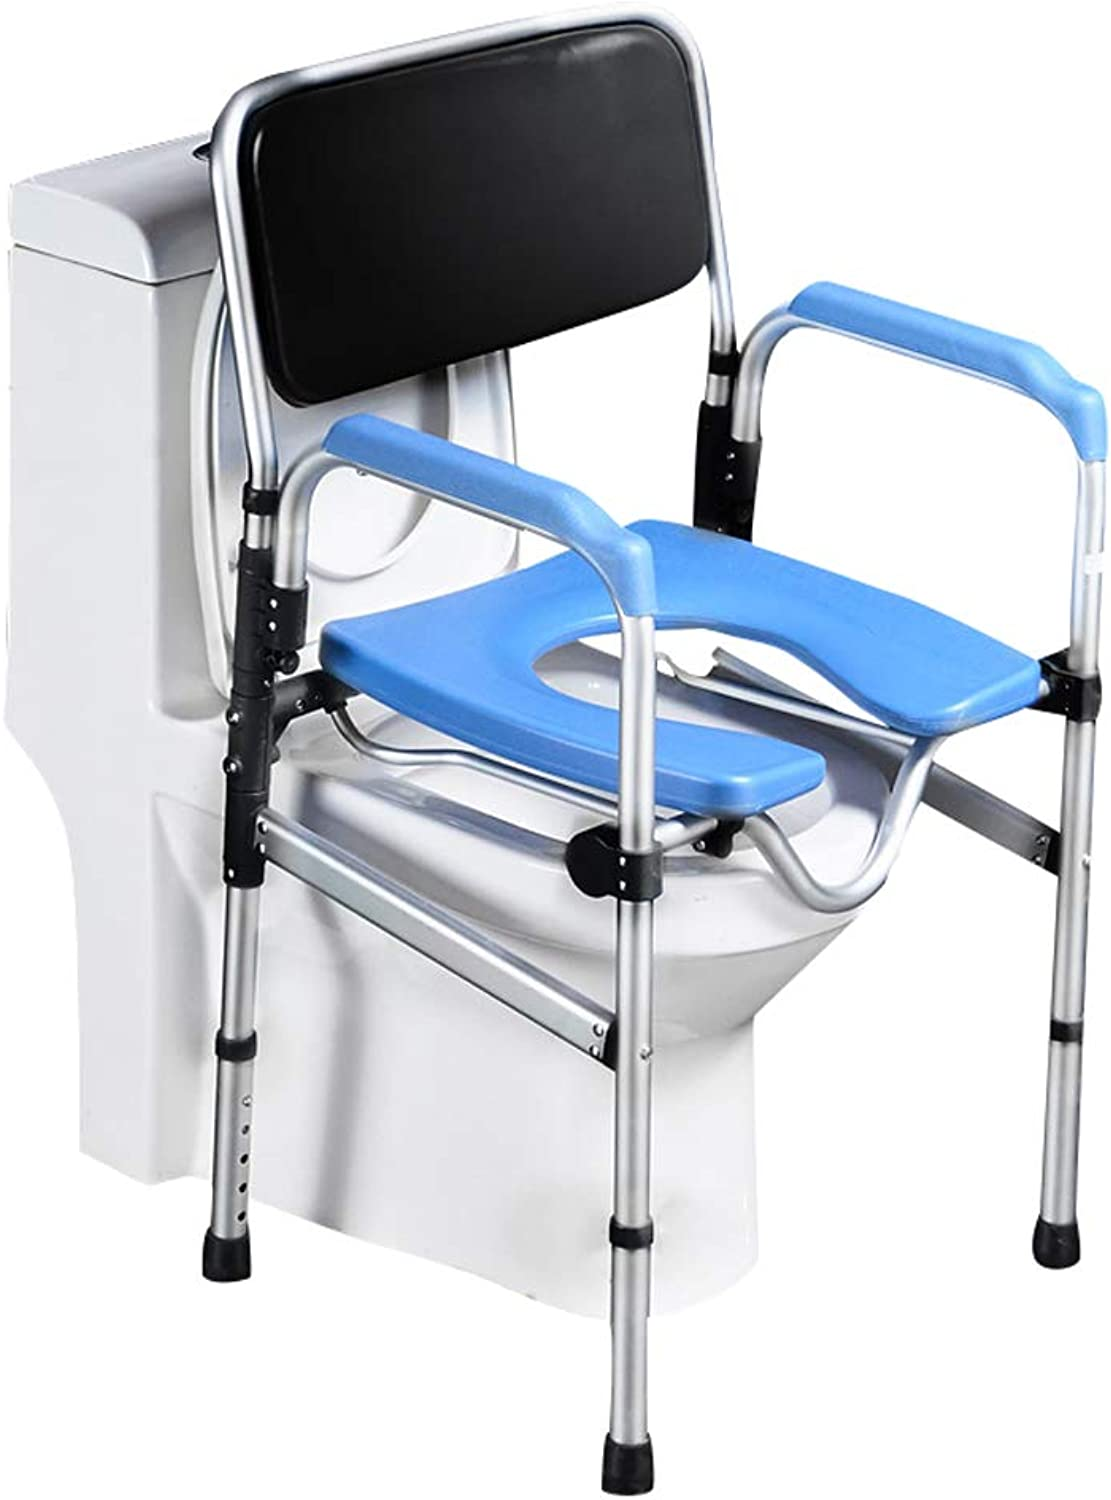 Pebegain Bathroom Folding Toilet Handrail, Elderly, Disabled and Handicap People Safe Anti-Skid Toilet Auxiliary Railing, Comfortable and Convenient Mobile Toilet Stool